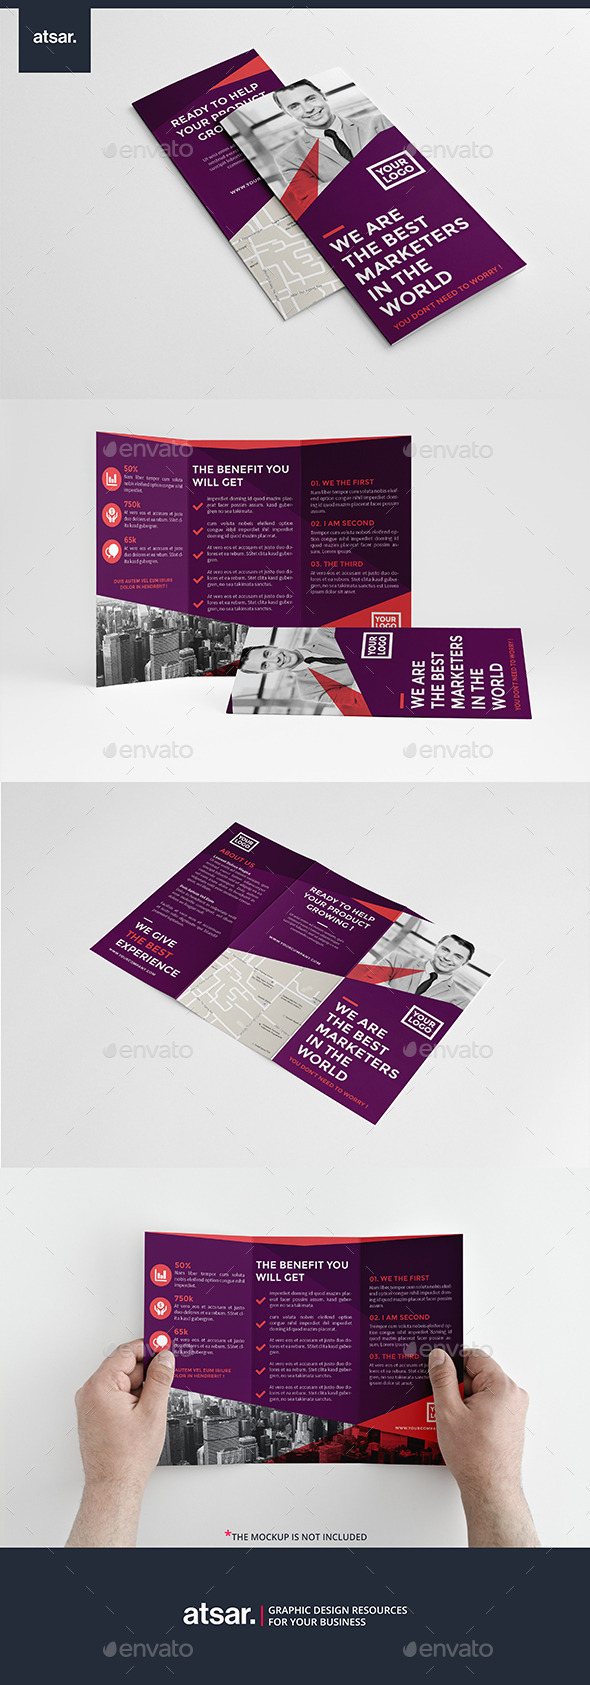 Purple Business Trifold - Corporate Brochures